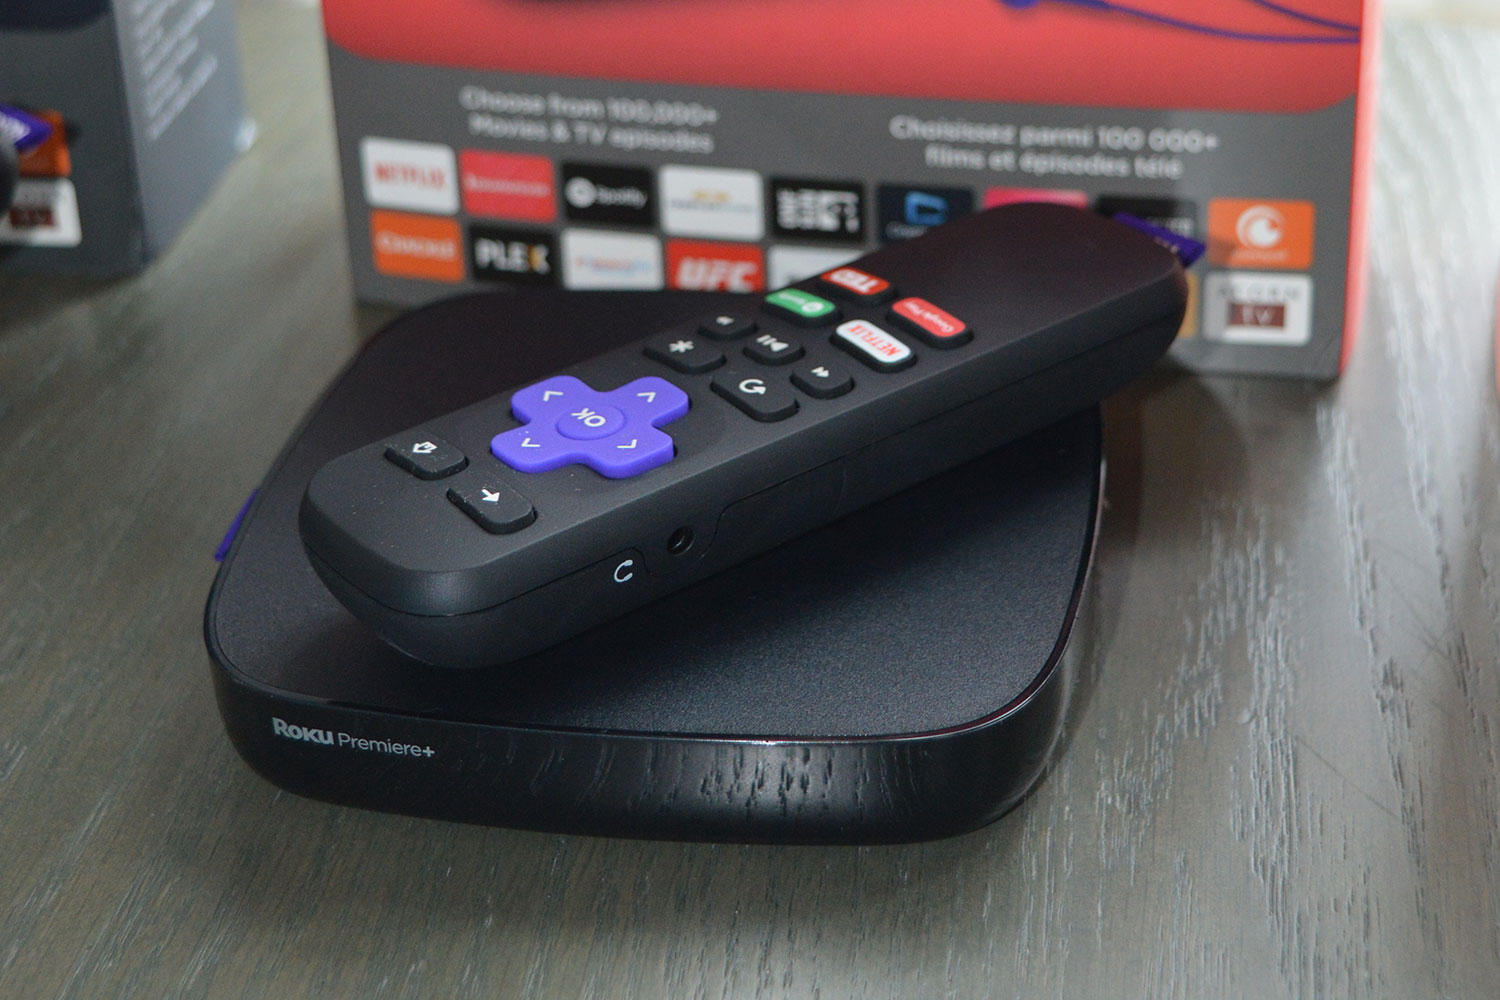 Cord Cutting 101 Turbocharge Your Roku With These Tips Tricks And Mods Digital Trends